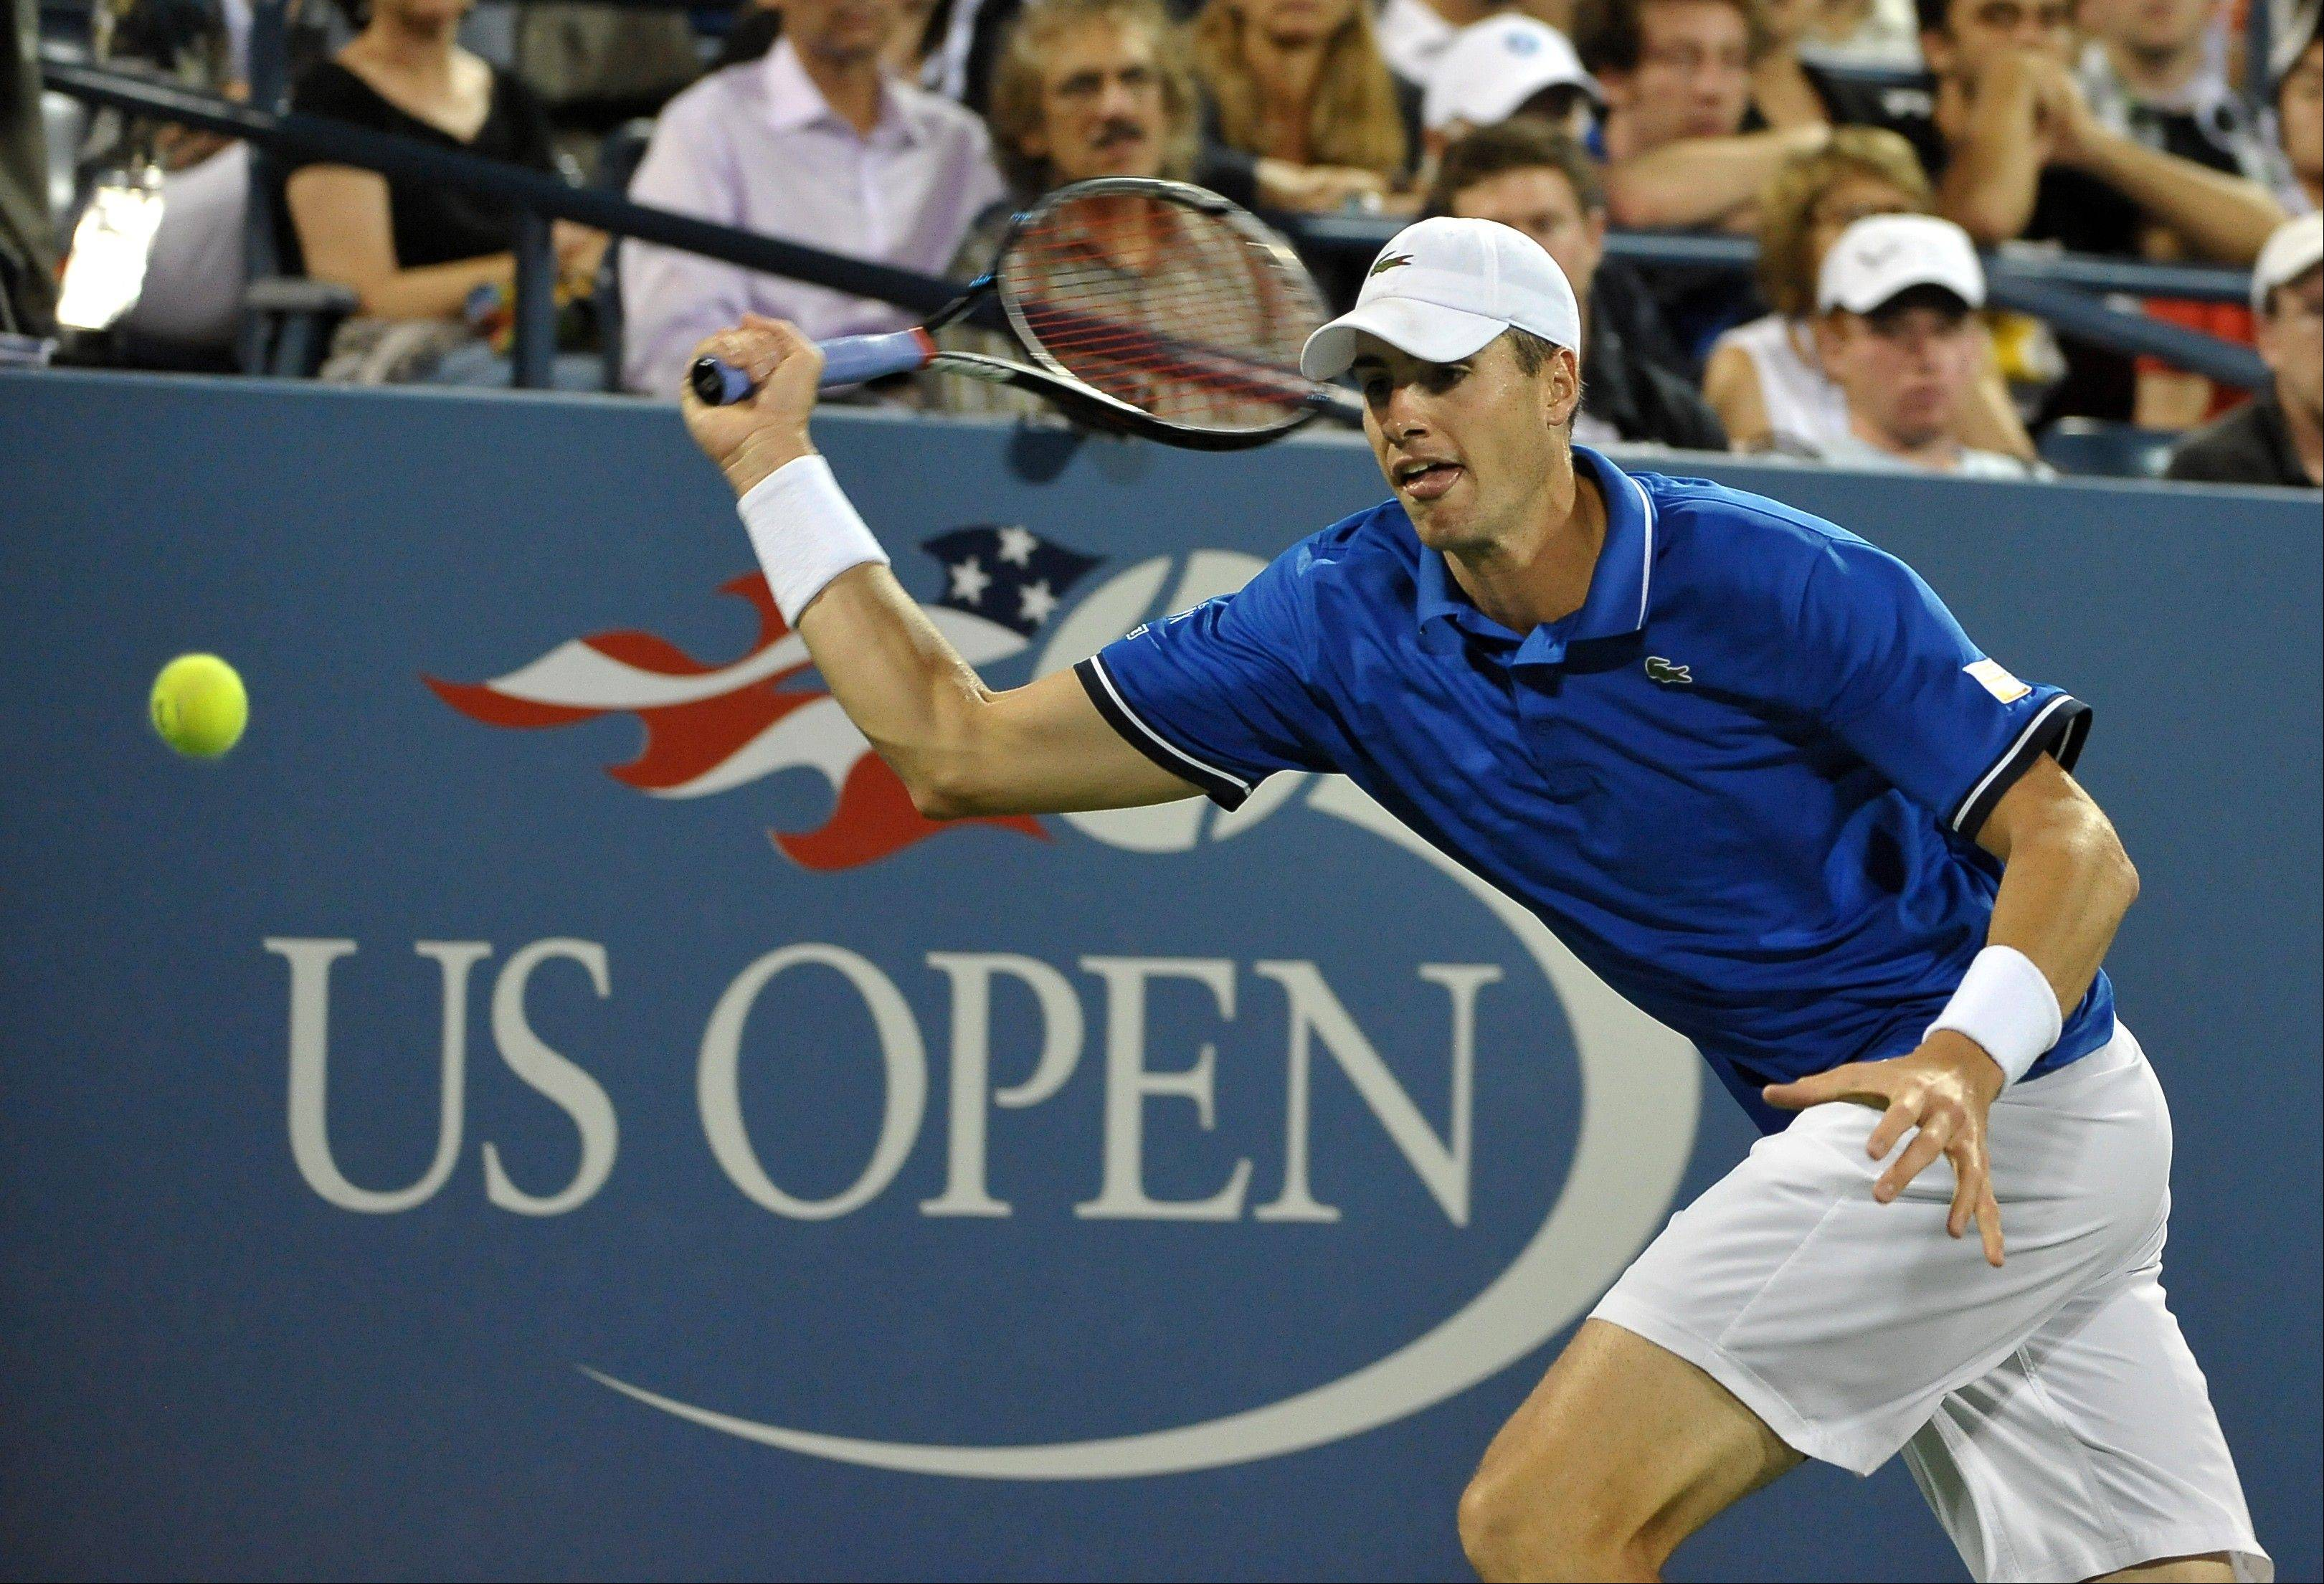 John Isner runs for the ball against Gael Monfils at the U.S. Open on Thursday in New York.